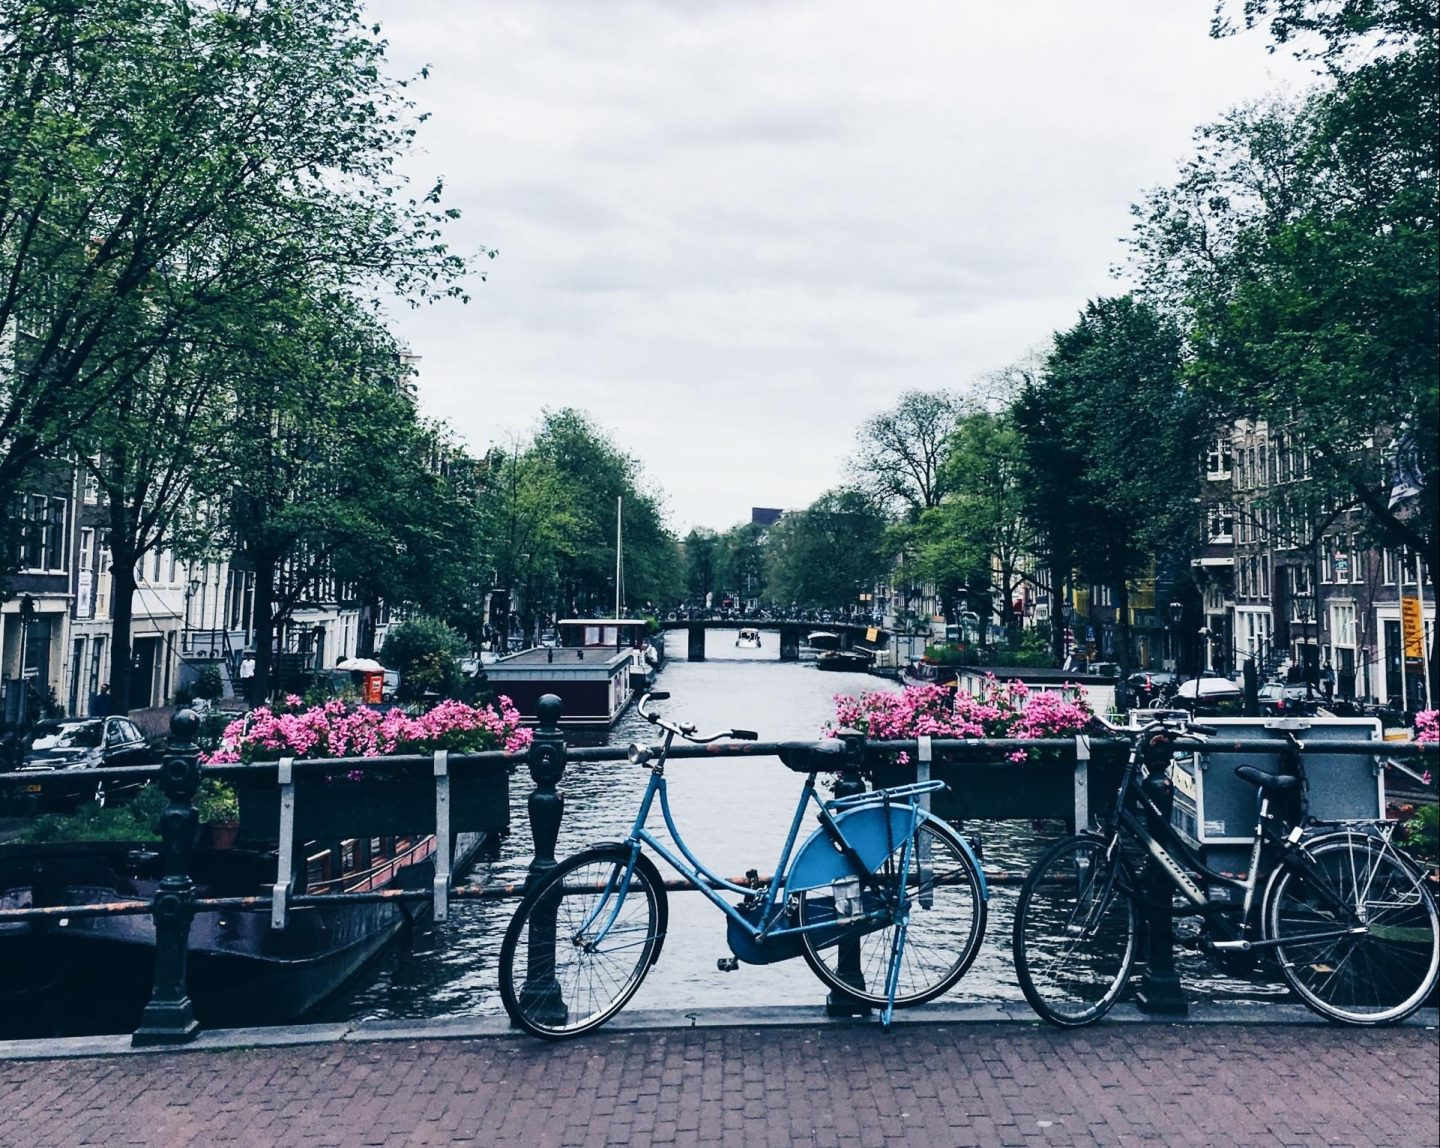 Exploring the Netherlands: A weekend in Amsterdam